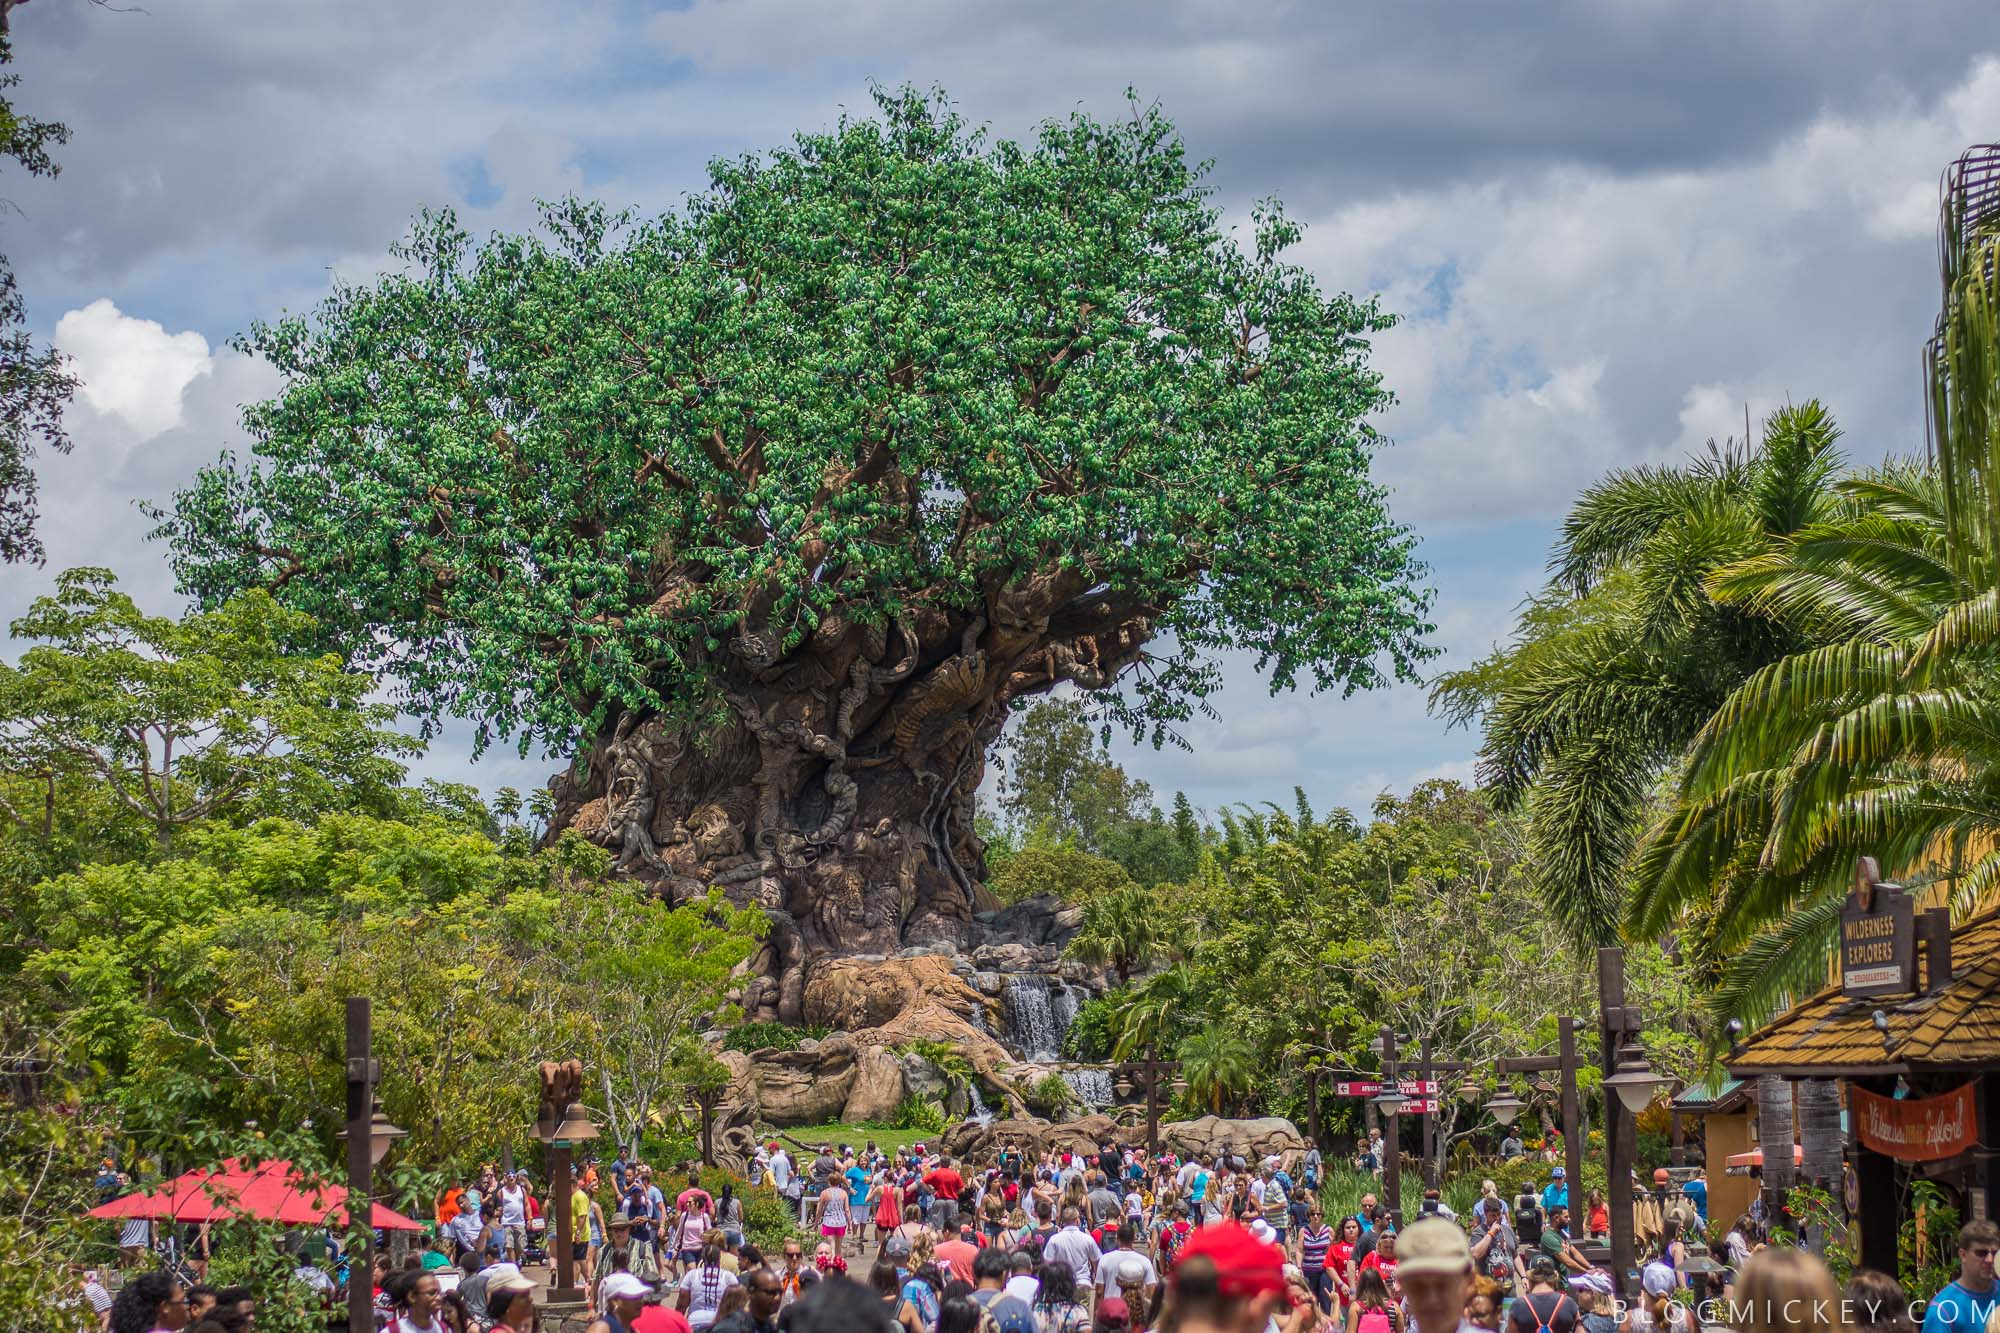 Animal Kingdom Stroller Parking Pilot Begins June 1st   Blog Mickey Animal Kingdom Stroller Parking Pilot Begins June 1st